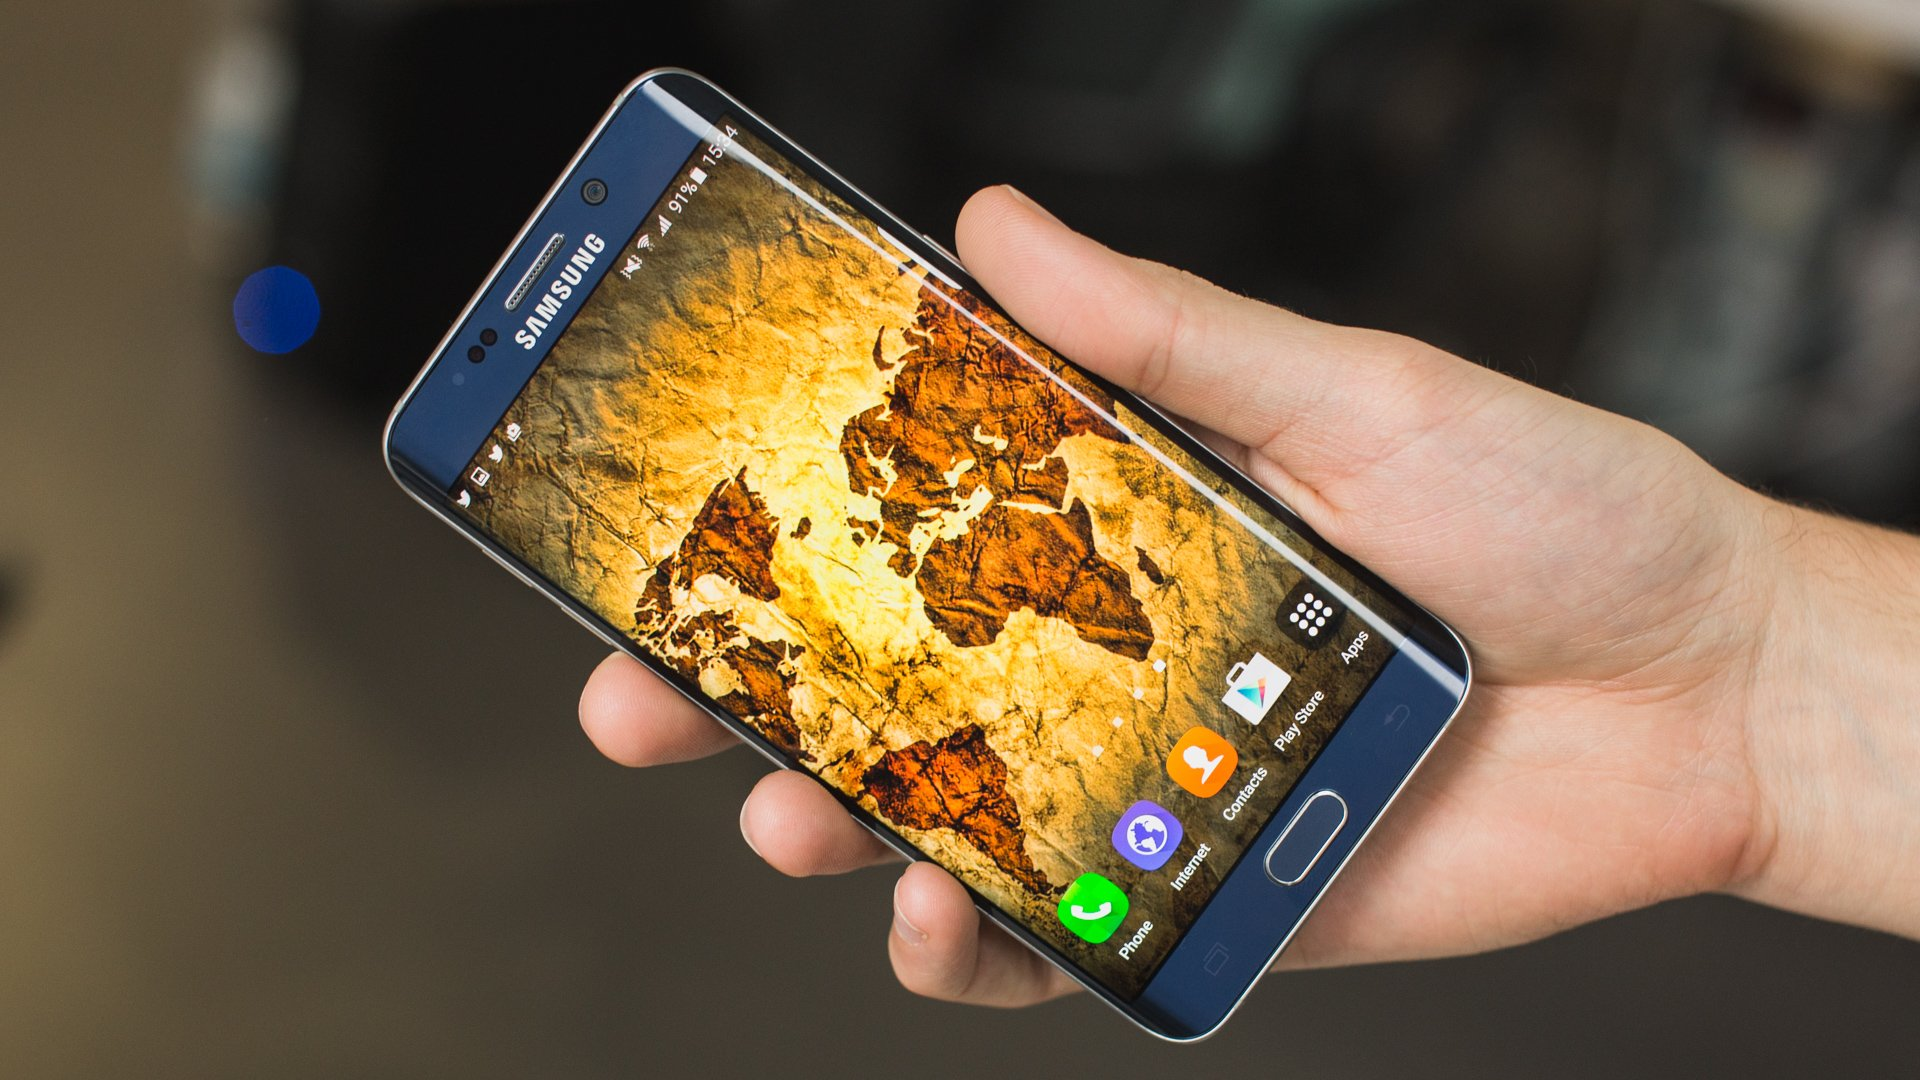 Black Wallpaper For Samsung Galaxy S6 6 Background: Galaxy S6 Edge Review: The High-end Samsung Revolution